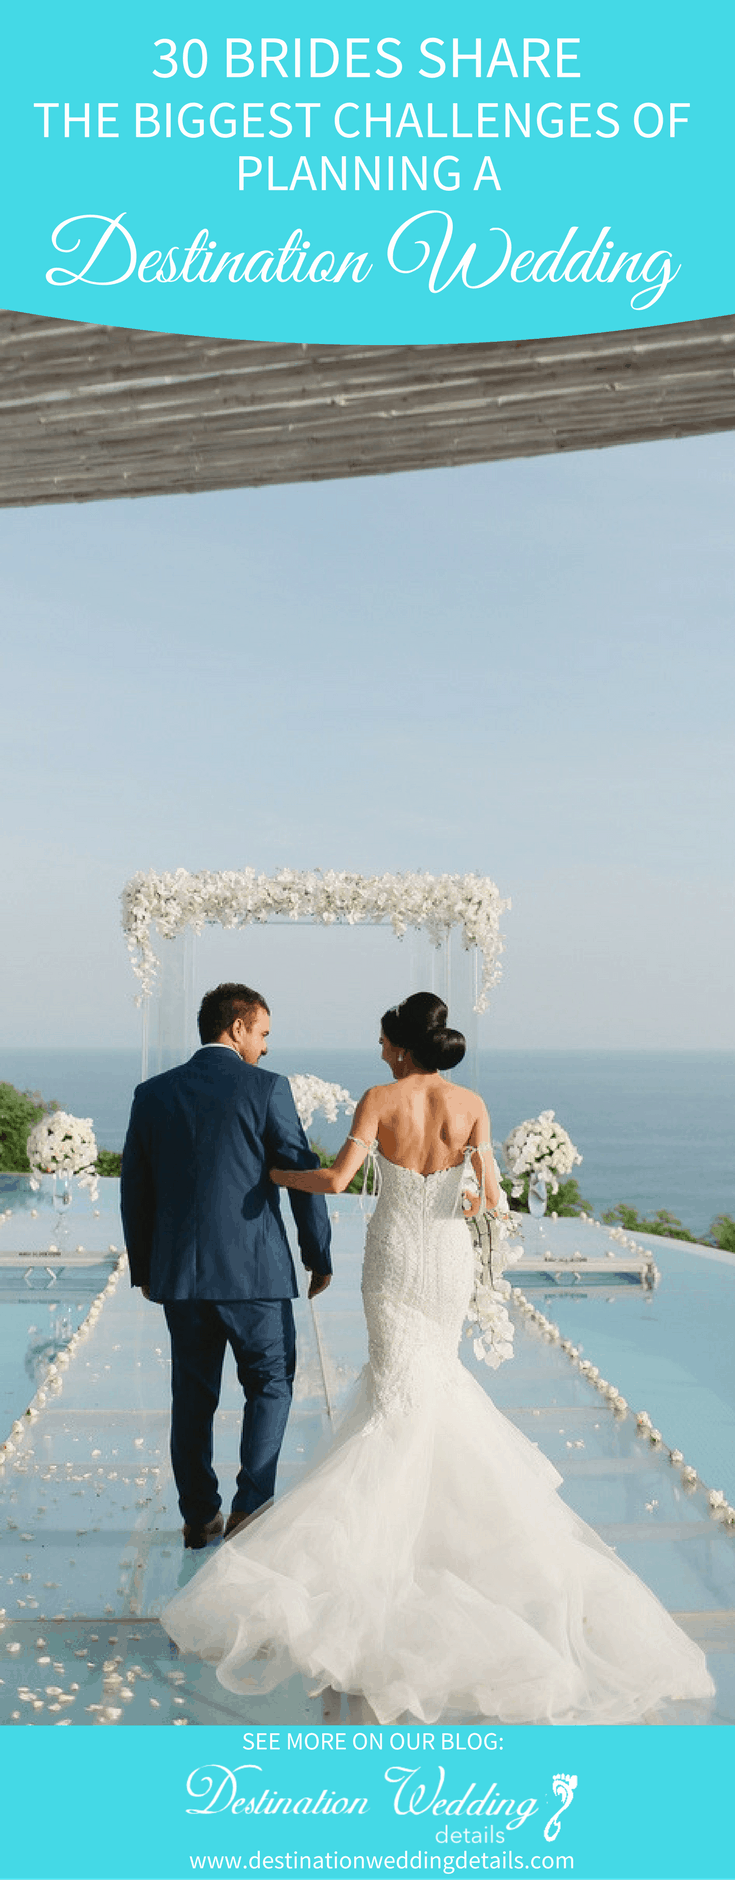 Destination wedding planning challenges